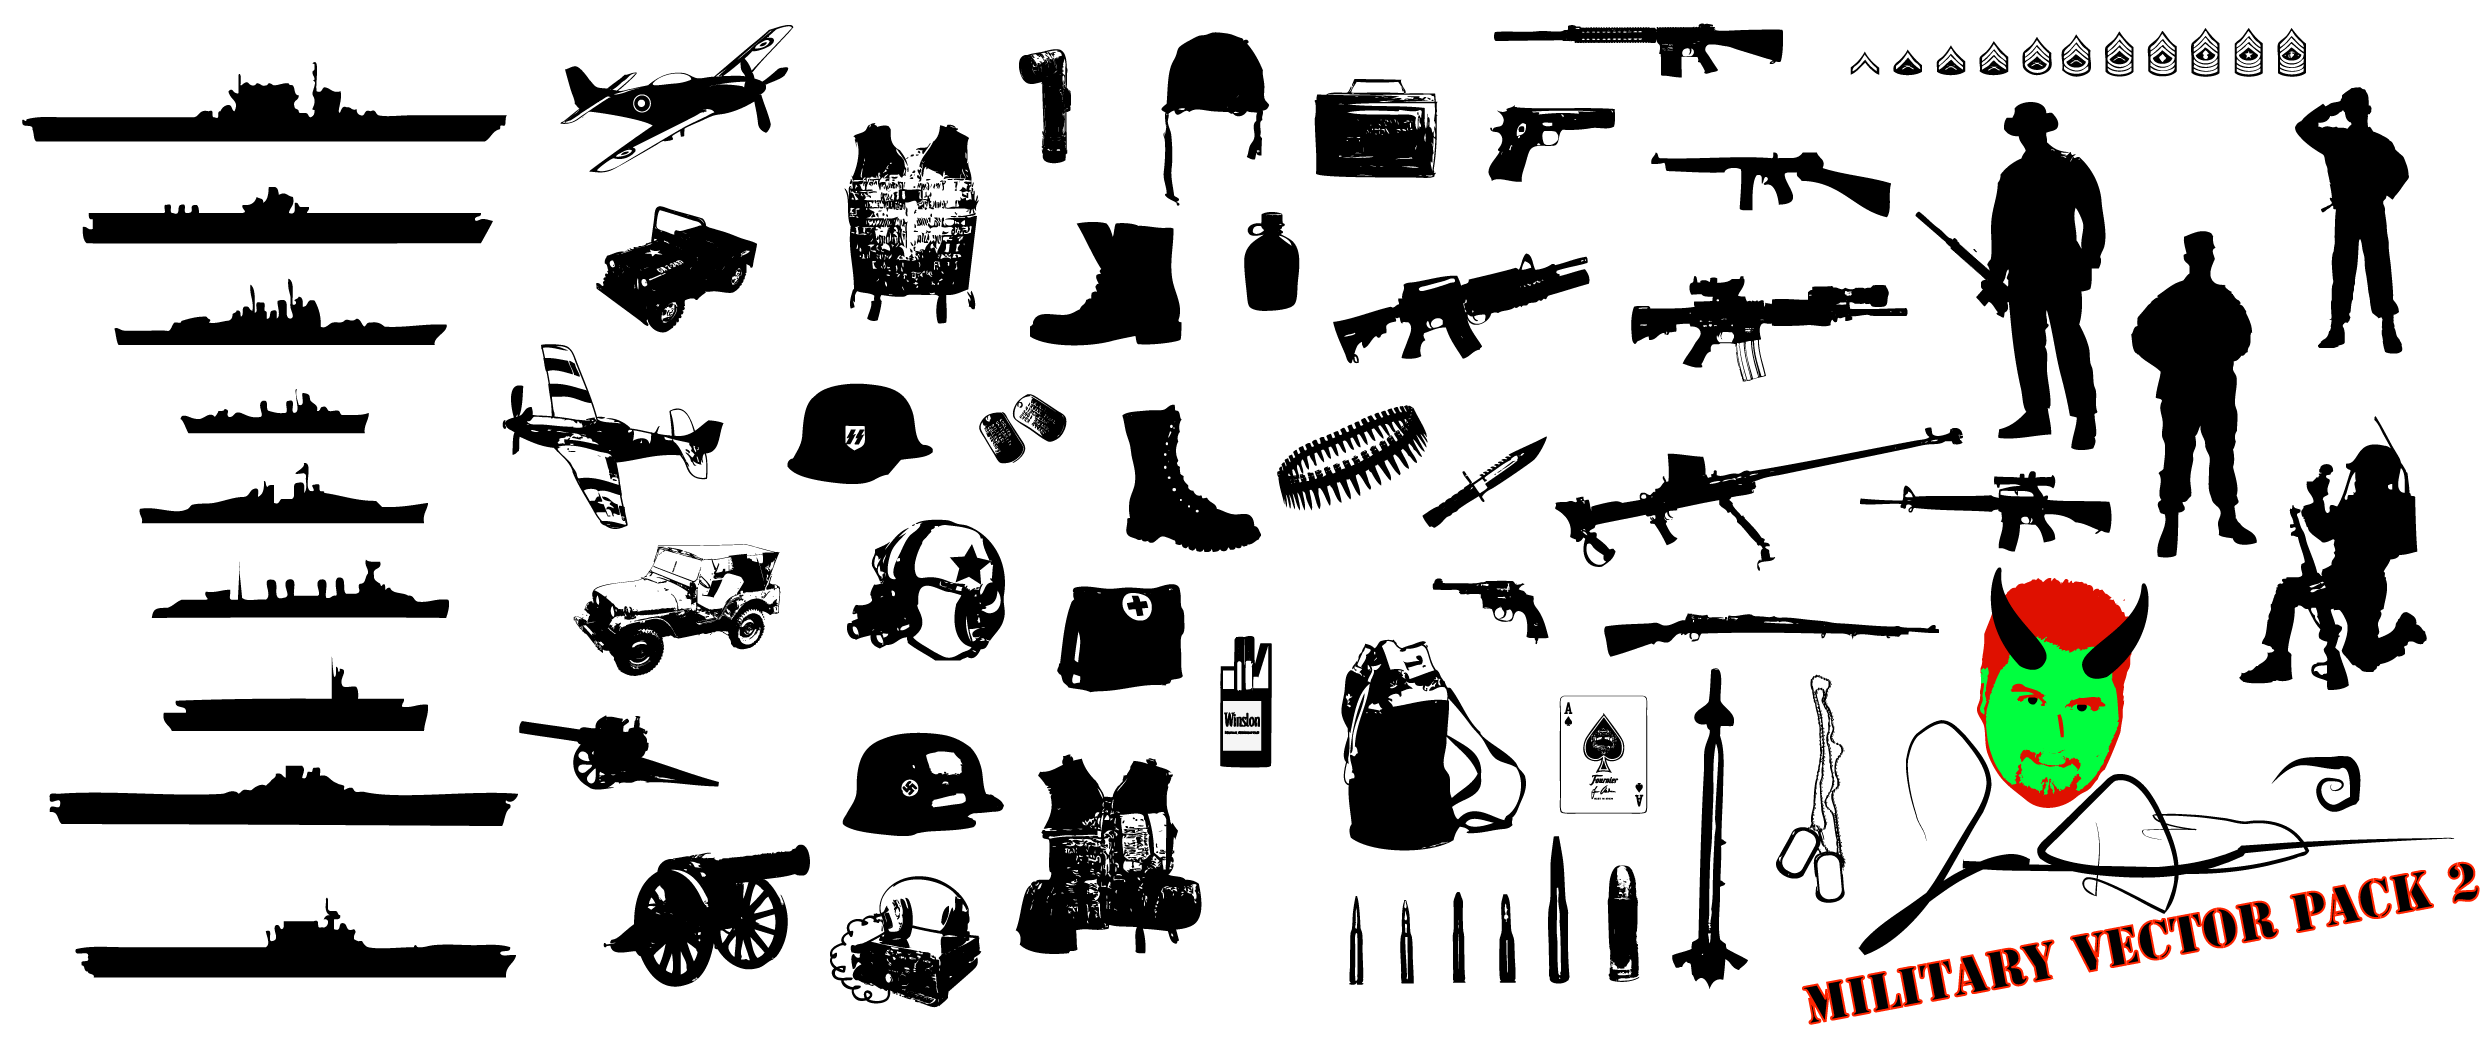 Military Vector Pack 2 by MaxDaMonkey